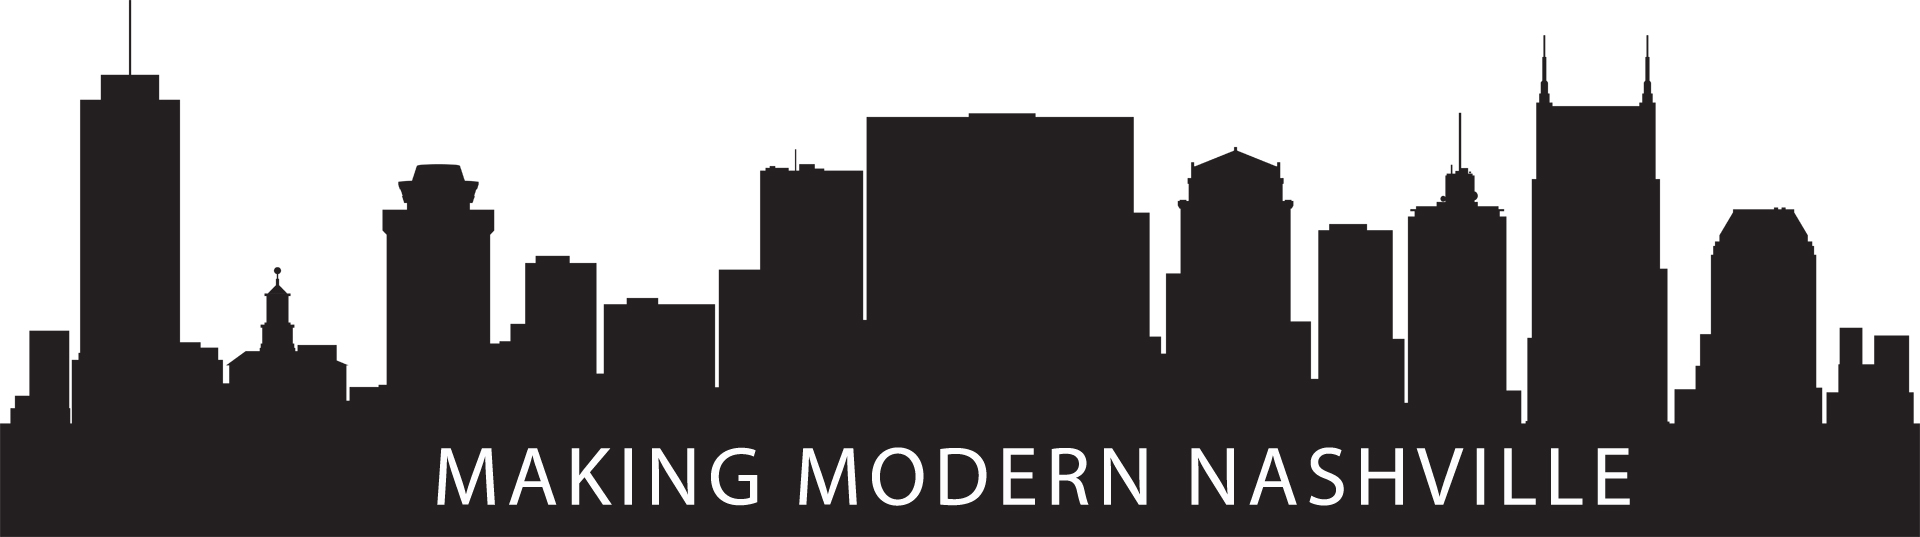 Making Modern Nashville